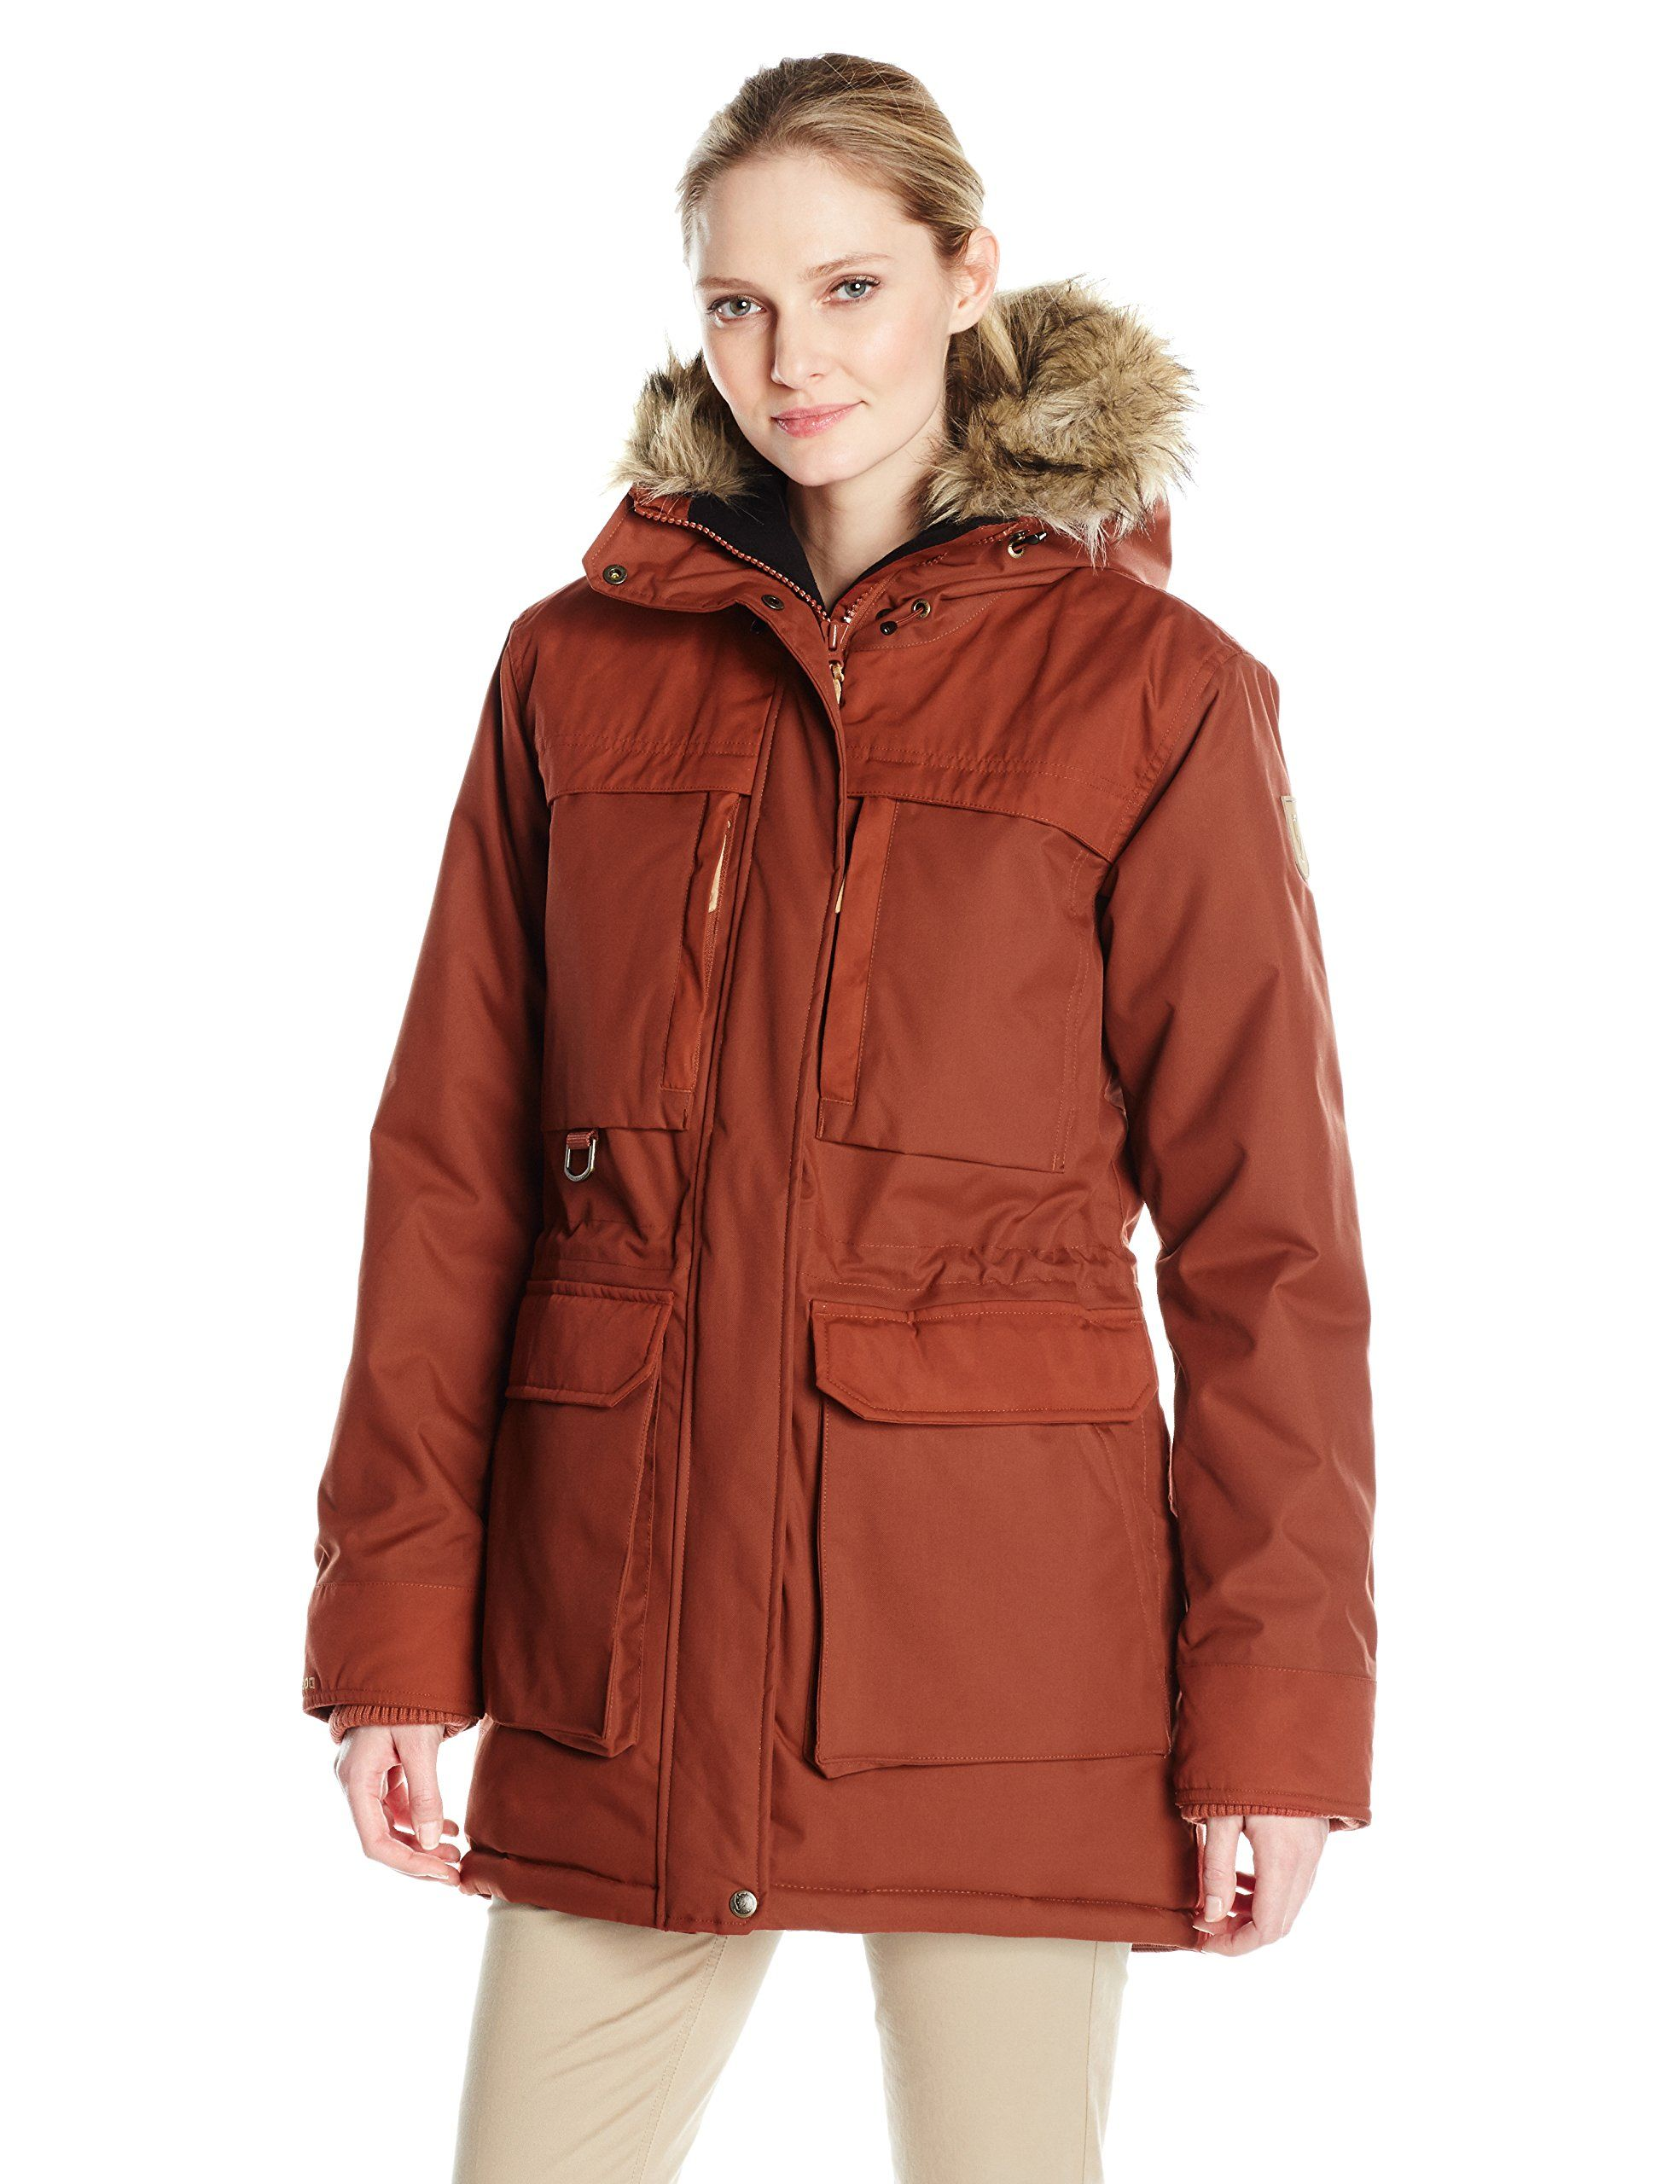 8d09bc284be Fjallraven Women's Polar Guide Parka, Large, Deep Red. Wind and Waterproof  winter Parka